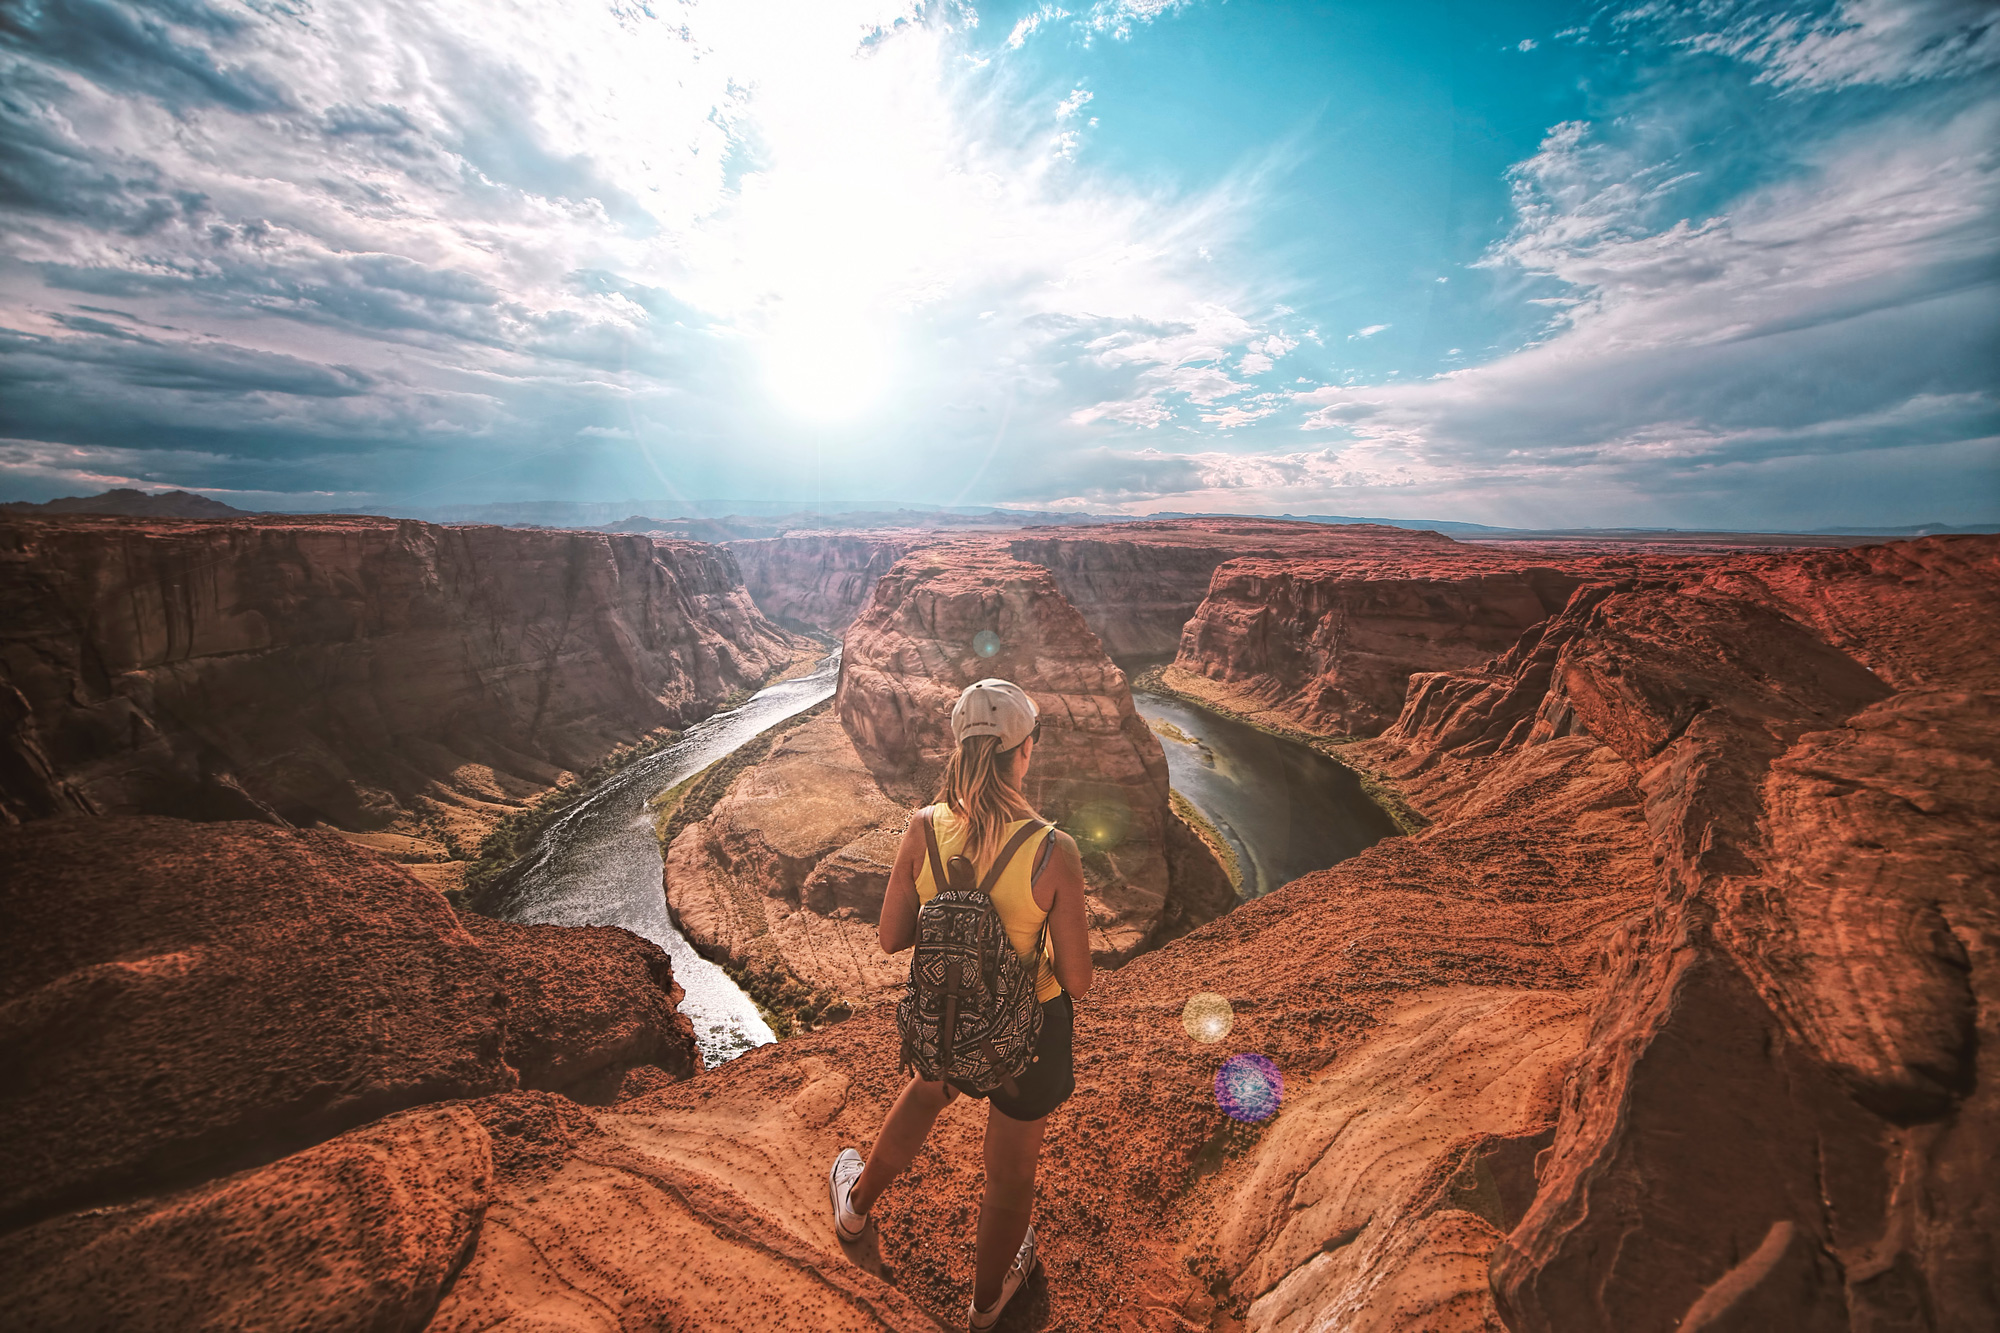 Adventure in Horseshoe Bend, United-States Photo by Drif Riadh